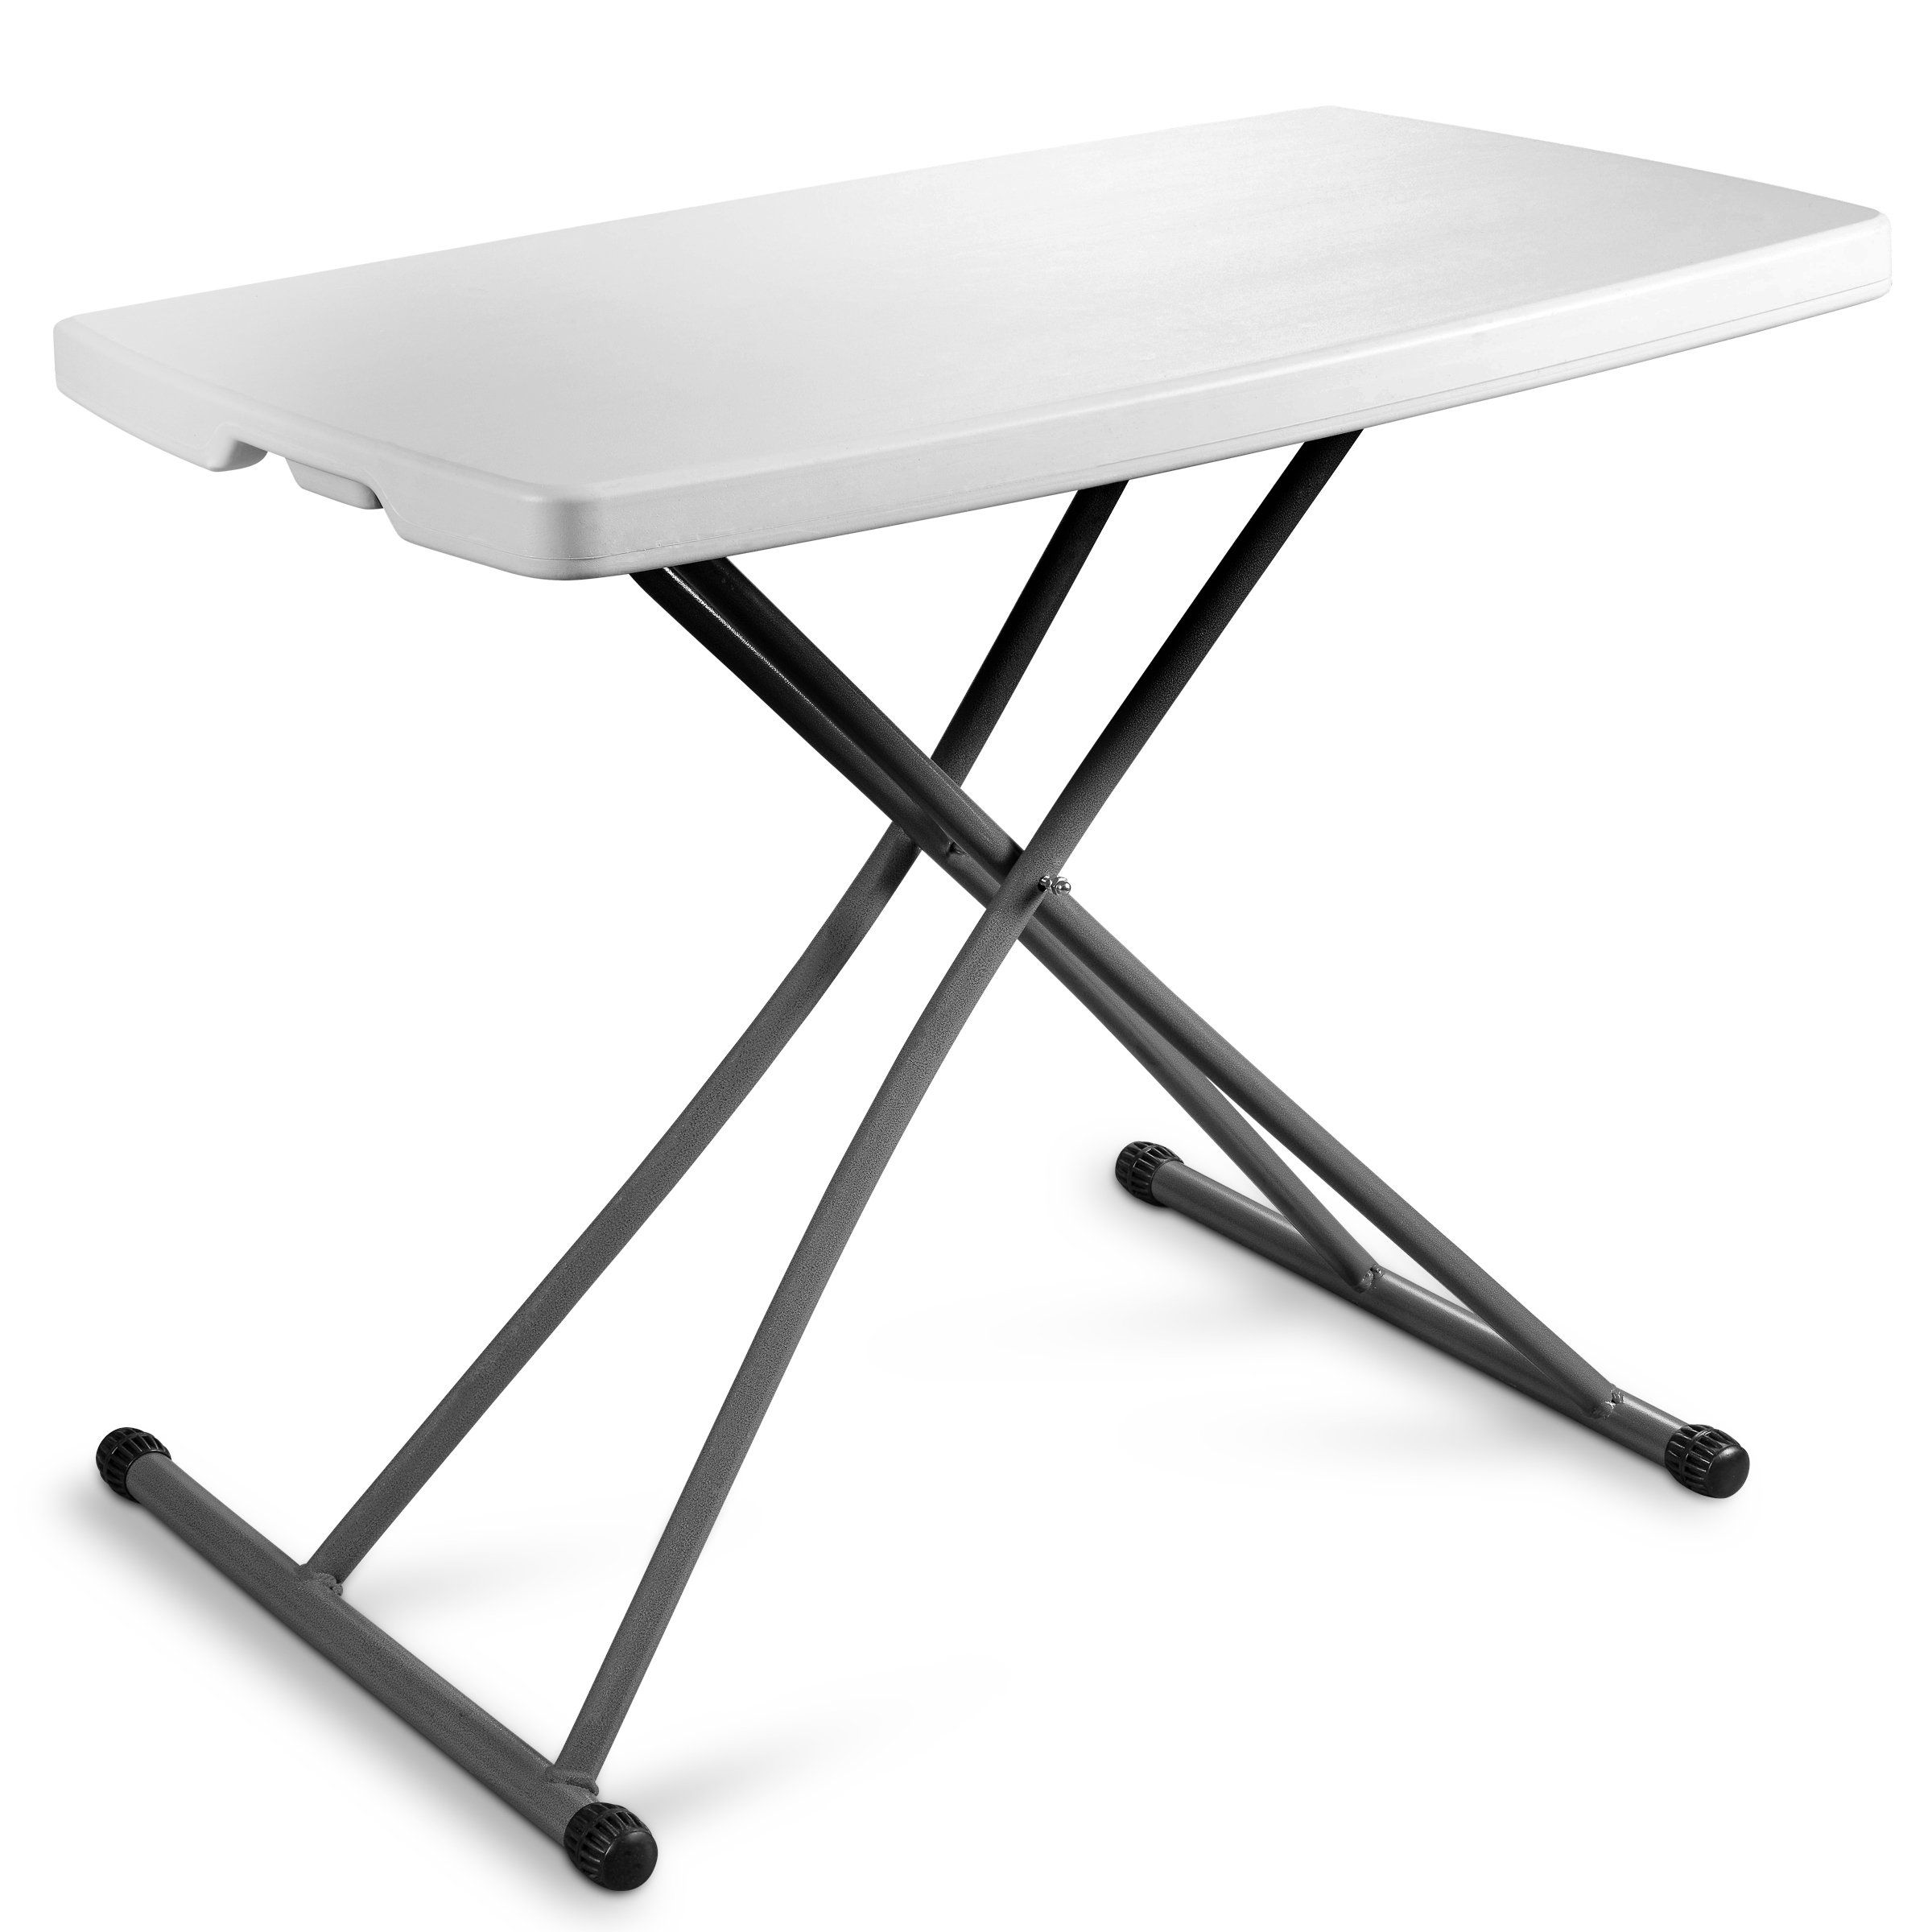 Zimmer Personal Folding Table Sturdy And Durable Steel Frame Legs, 4  Adjustable Heights, Quick